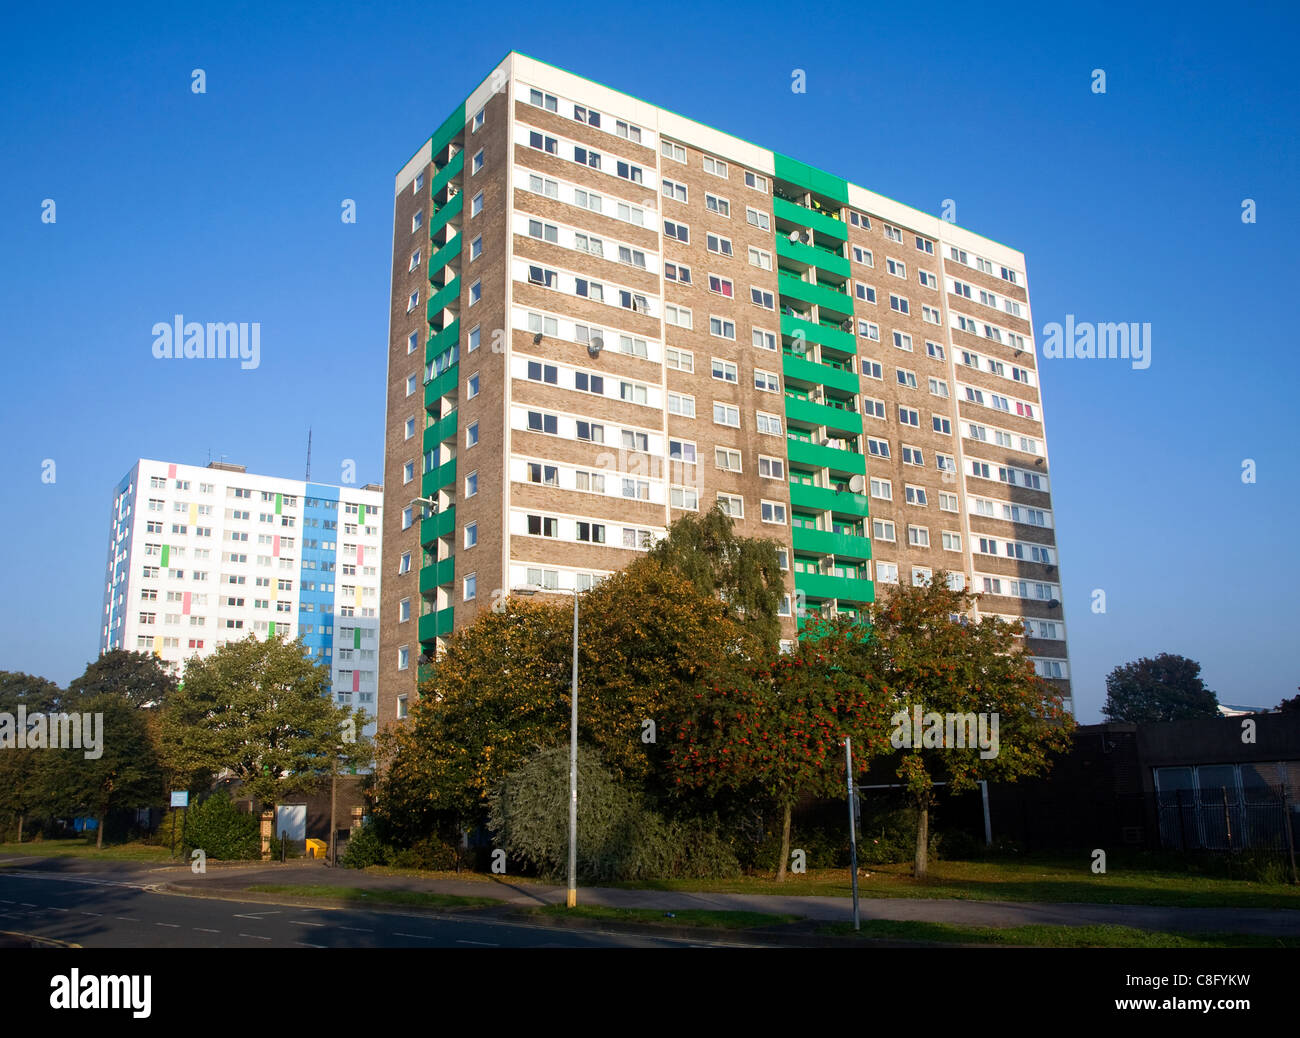 High rise inner city flats, Anlaby Road, Hull, Yorkshire, England - Stock Image